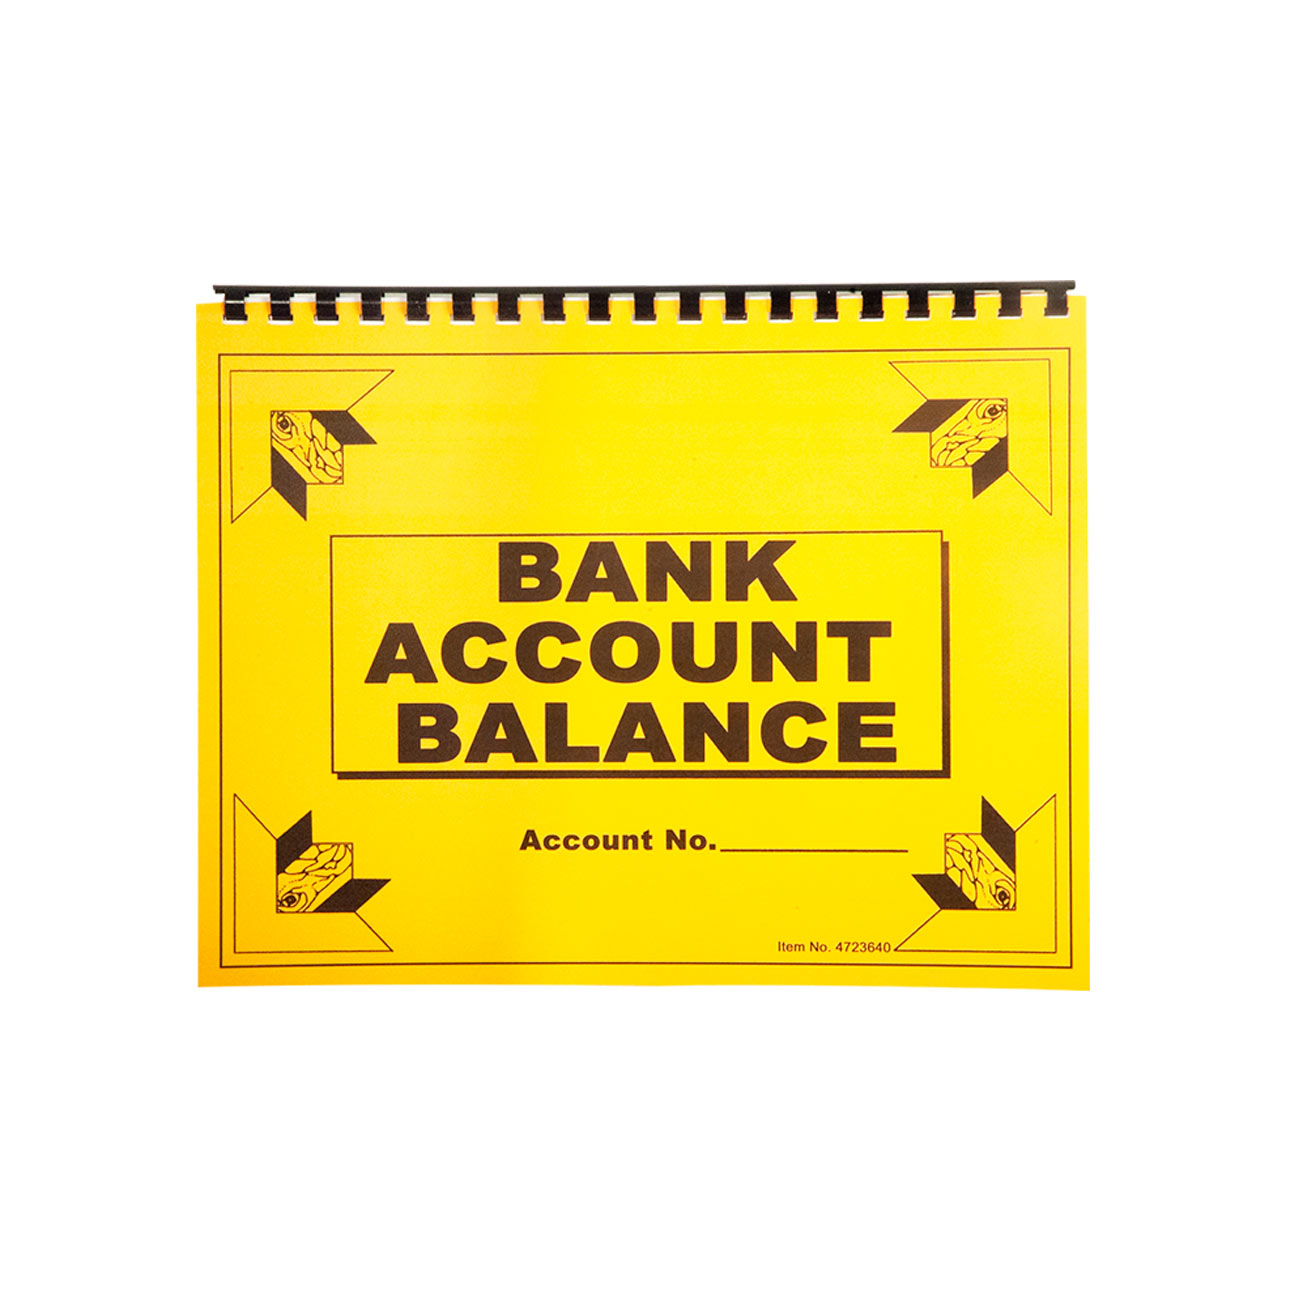 Large Print Check Deposit Register - click to view larger image